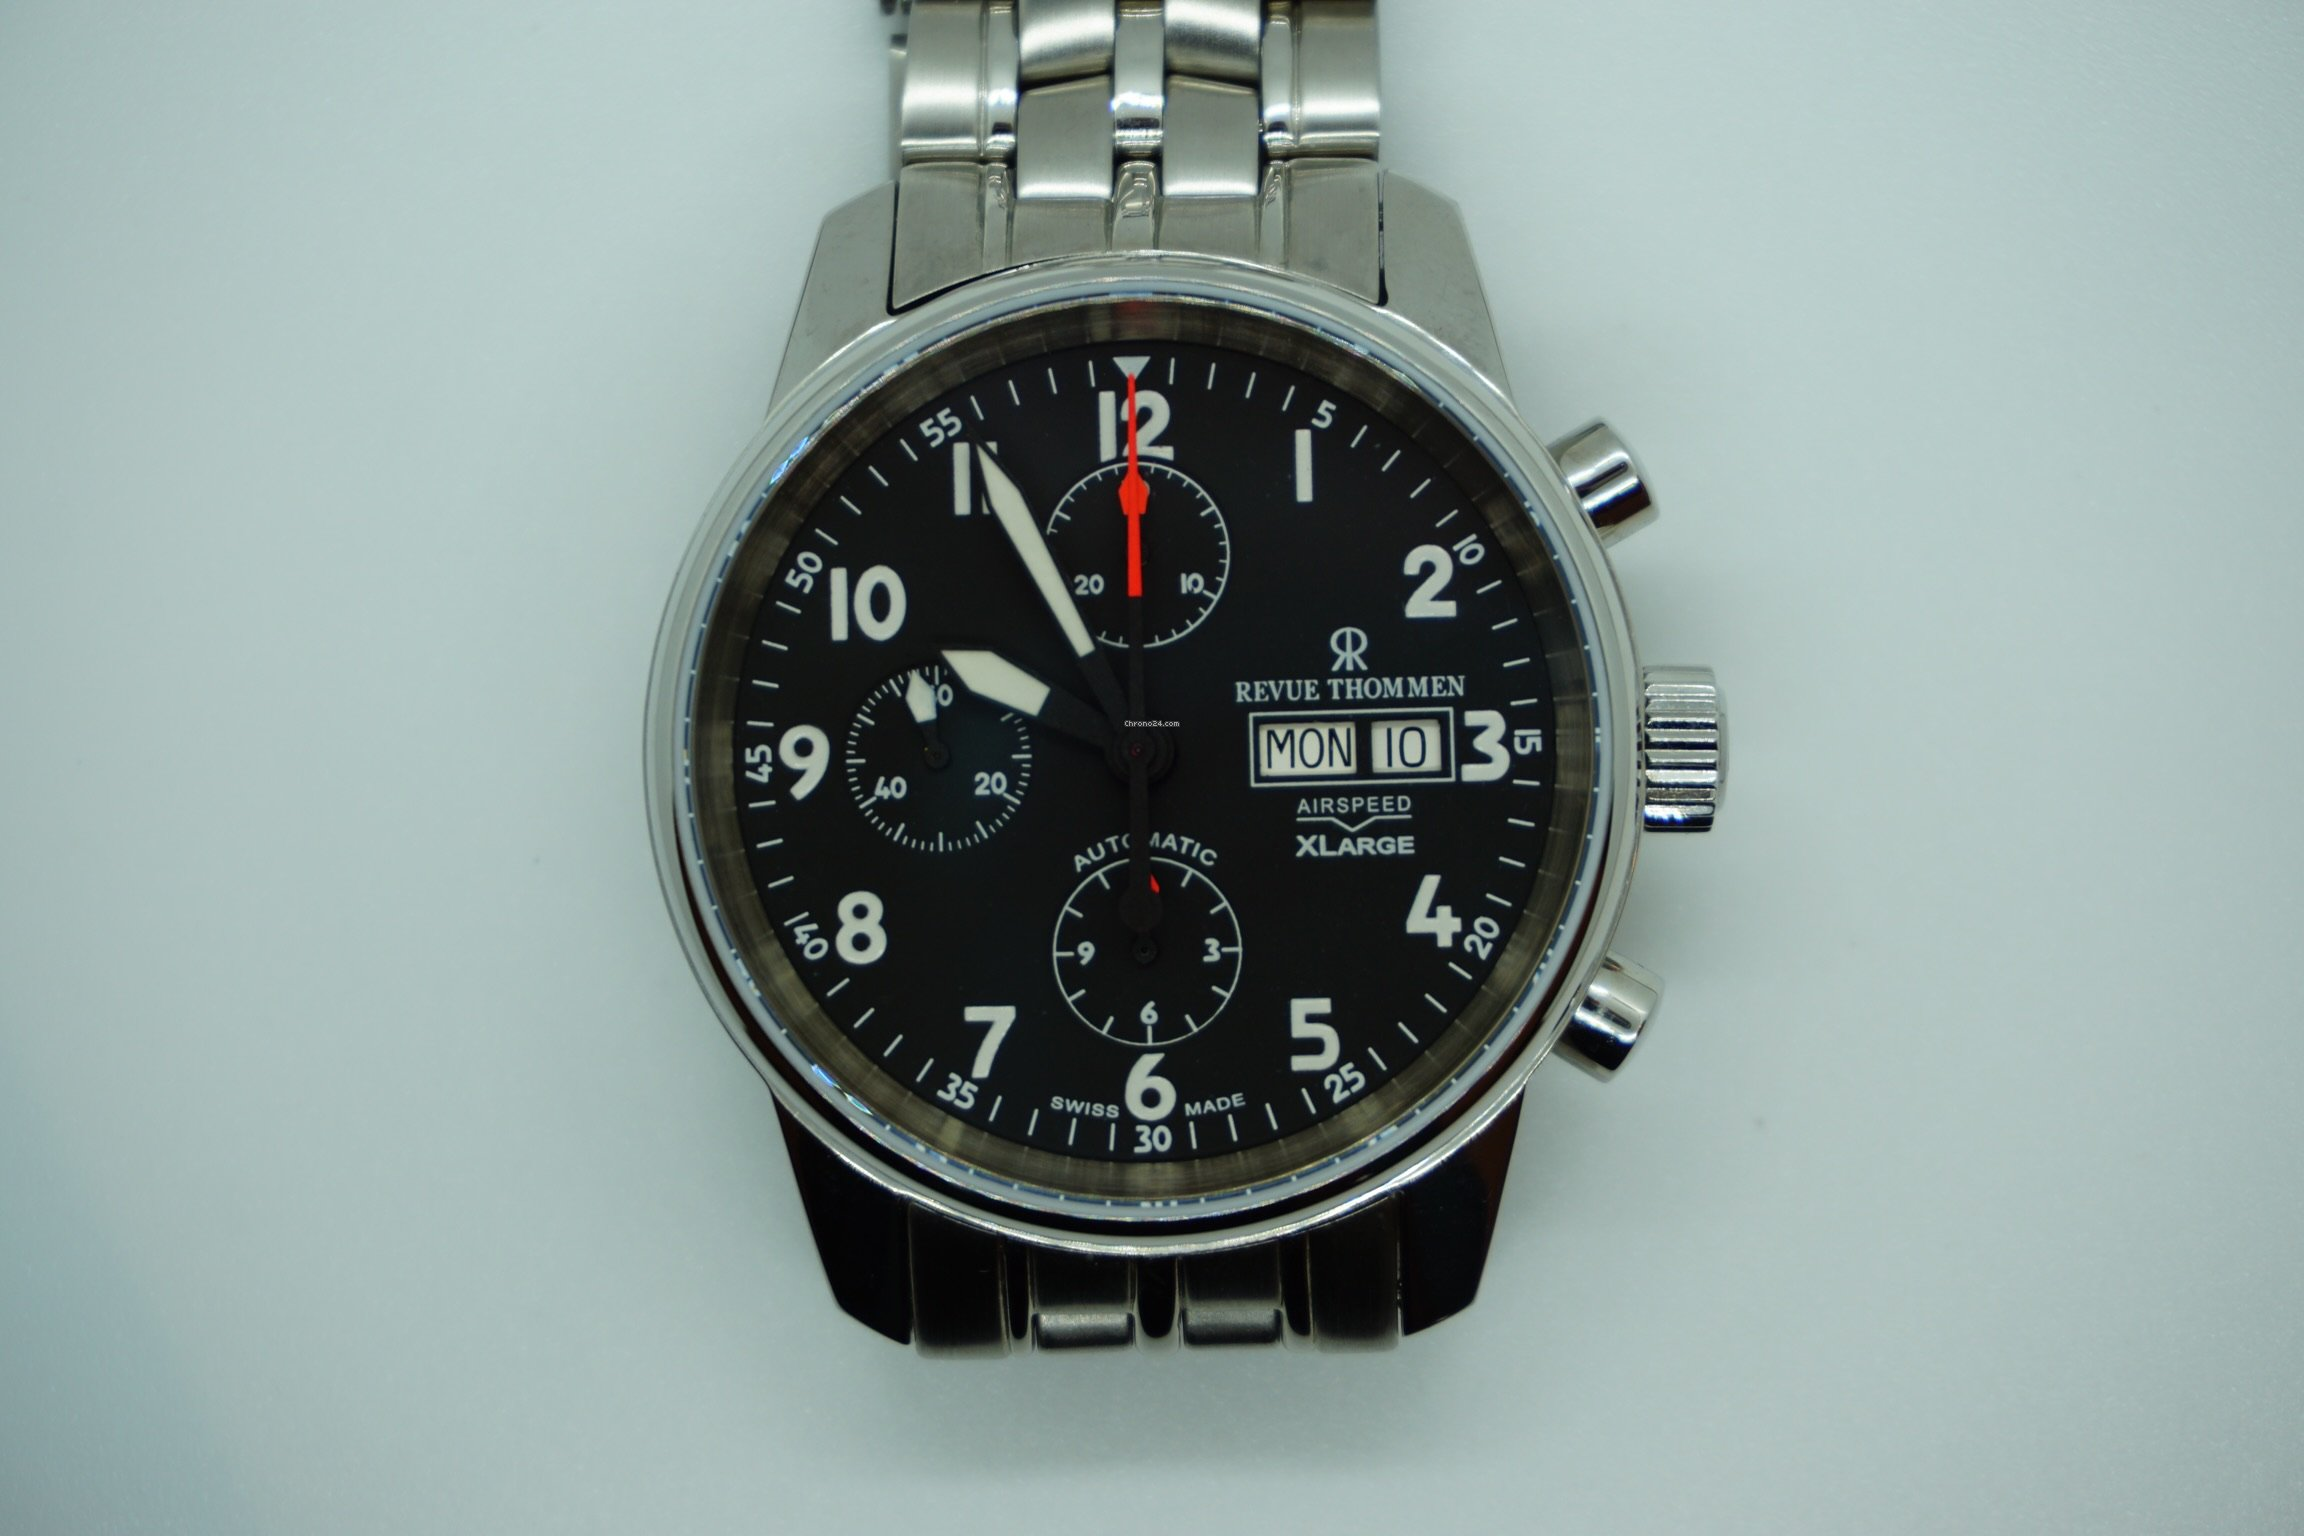 Revue Thommen Airspeed X Large for AU$ 751 for sale from a